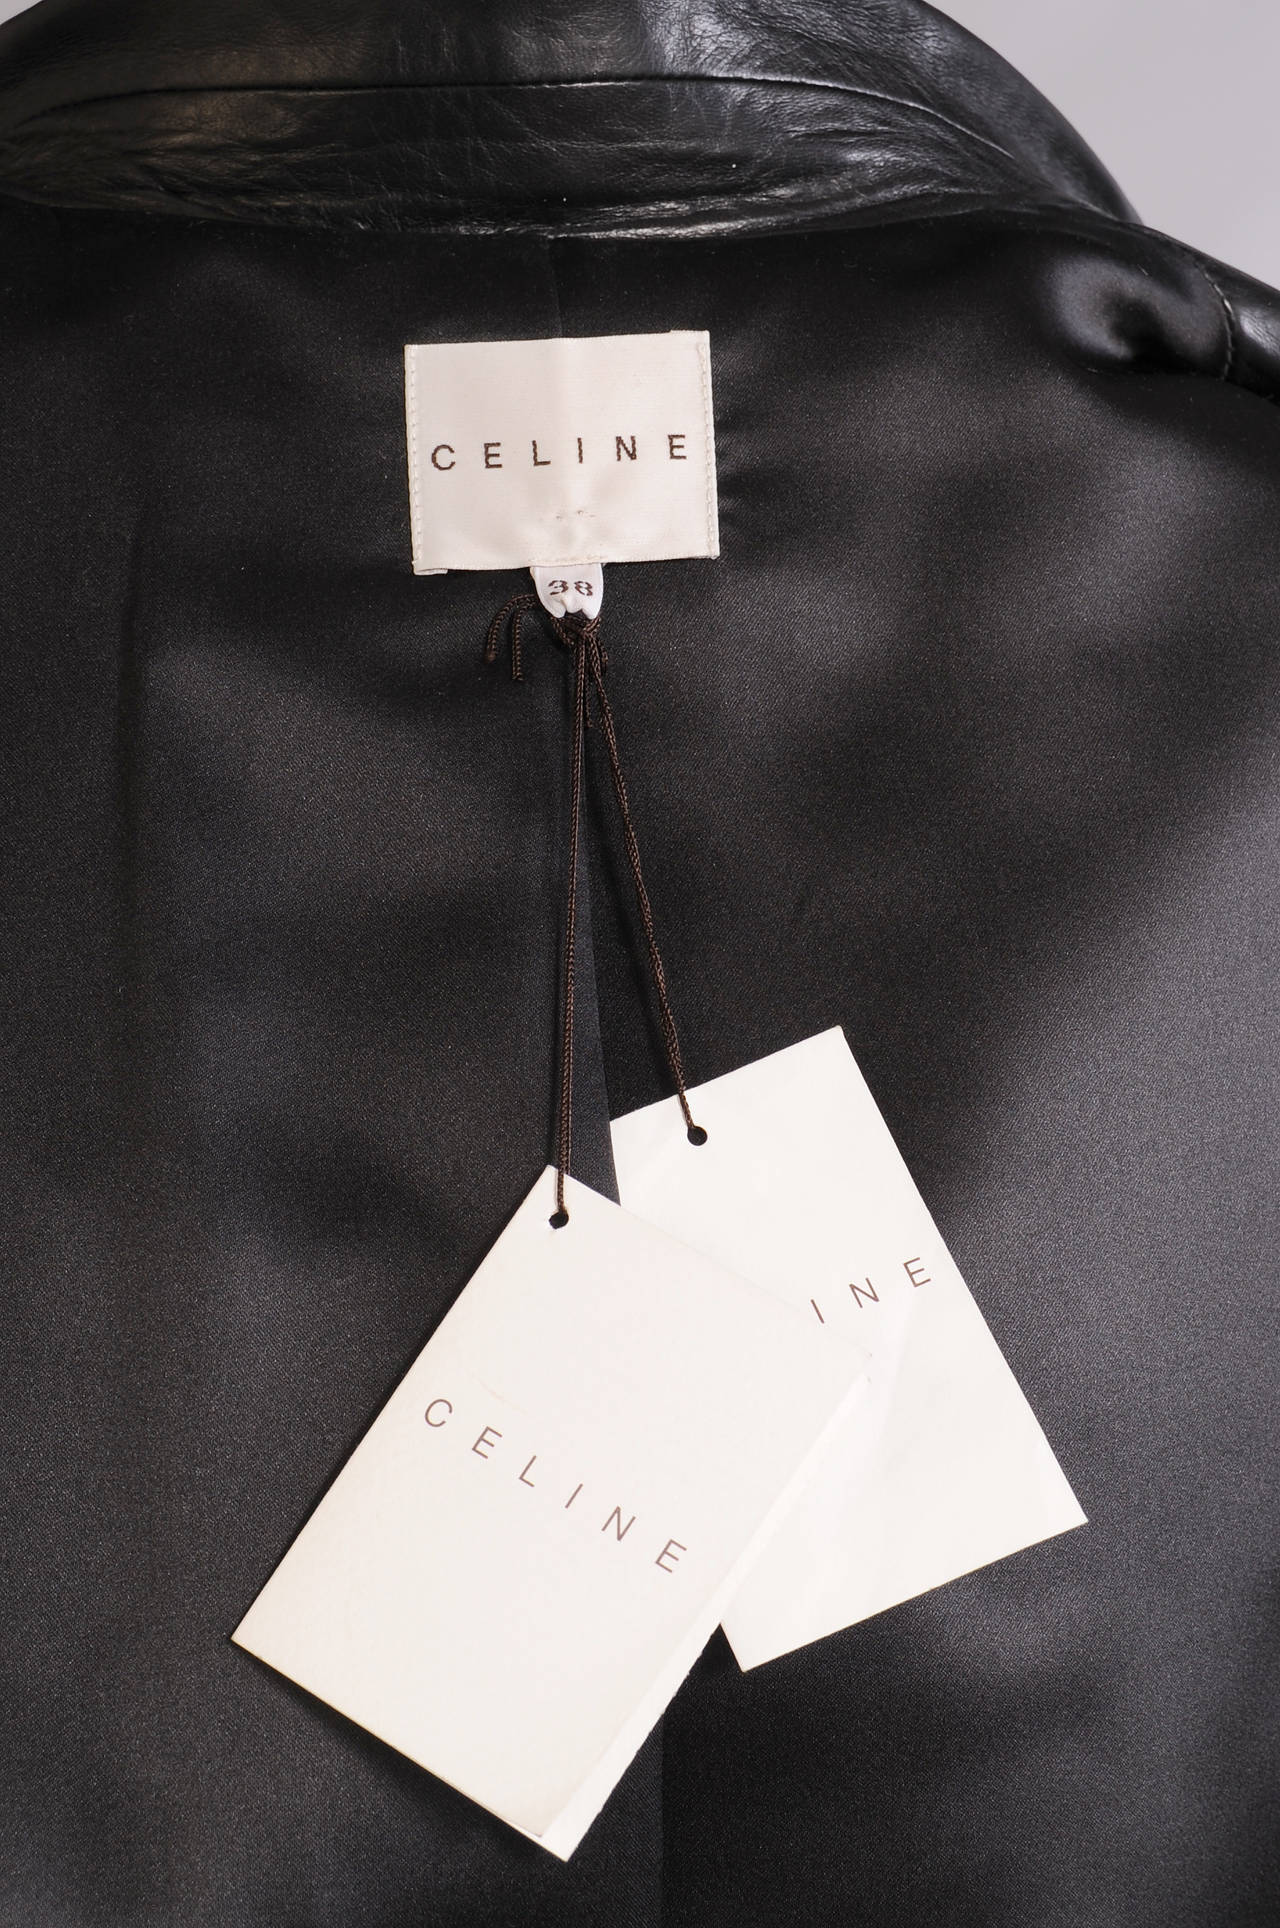 Celine Stunning Black Leather Trench Coat, Never Worn 5